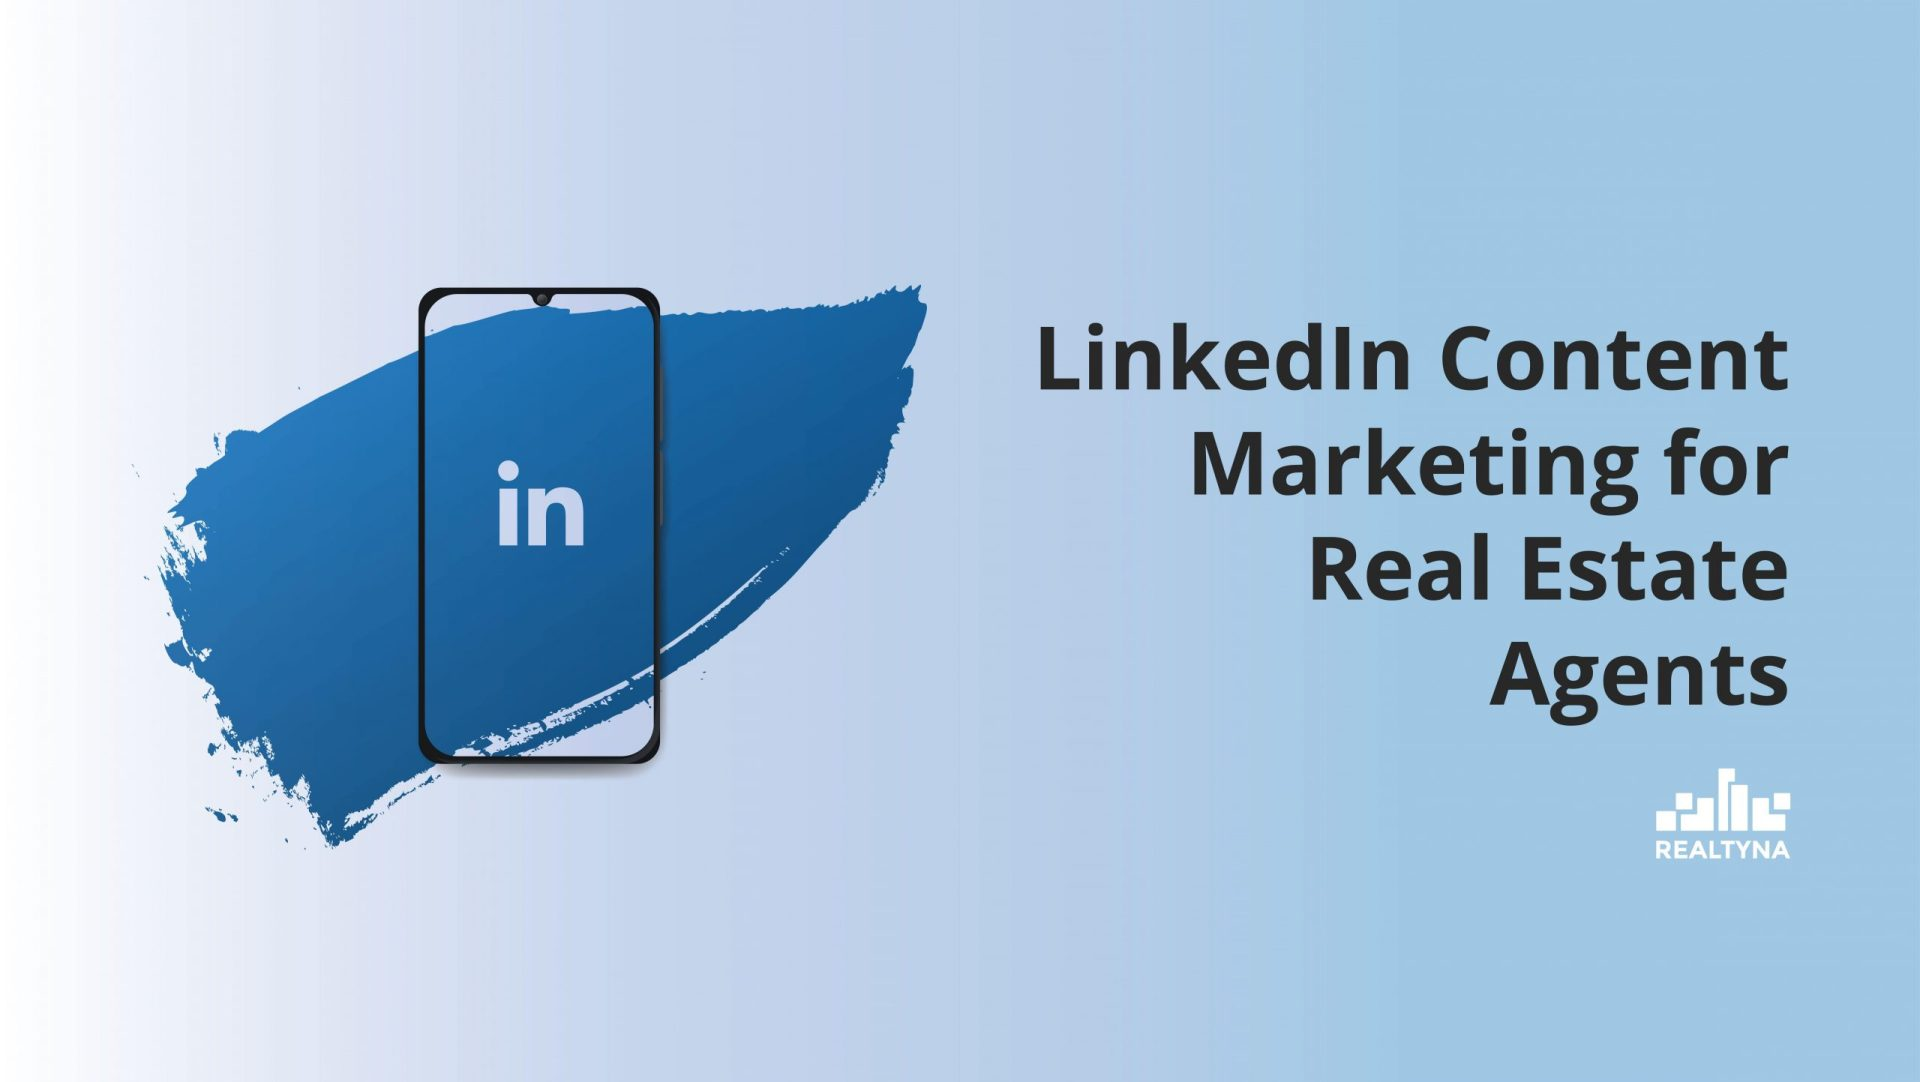 LinkedIn Content Marketing for Real Estate Agents